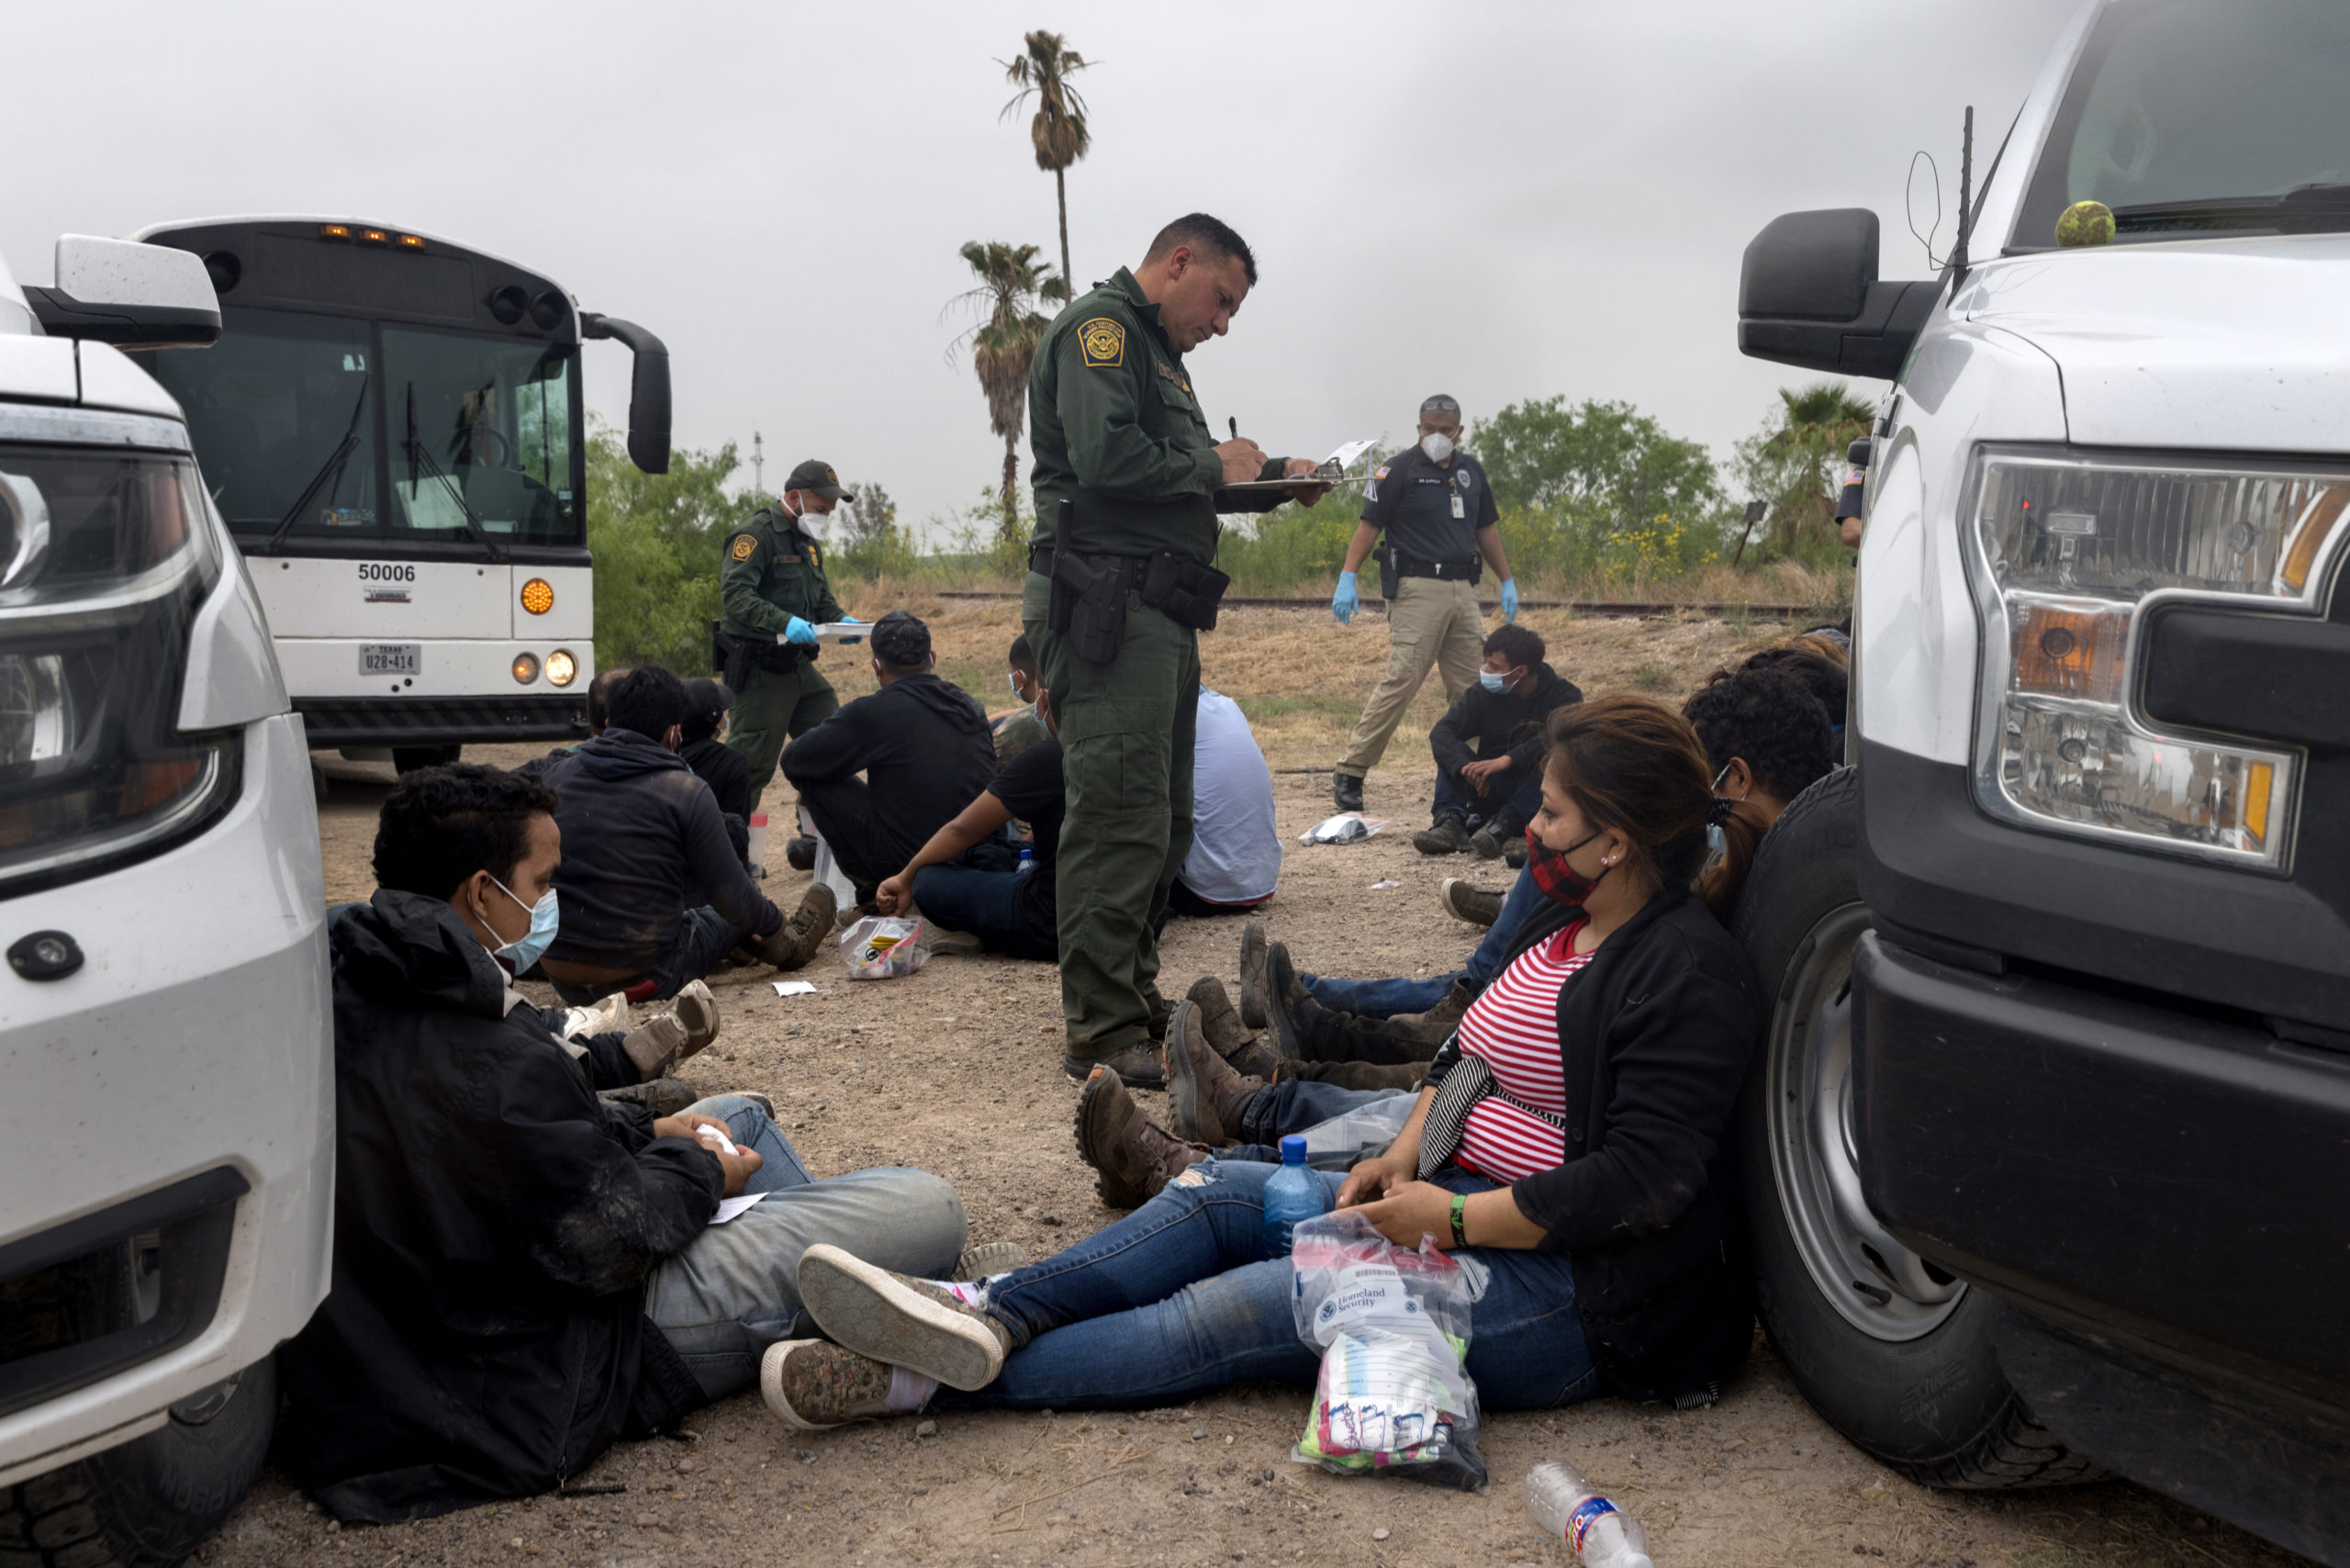 A U.S. Border Patrol agent registers immigrants before bussing them to a processing center near the U.S.-Mexico border on April 13, 2021 in La Joya, Texas. (Photo by John Moore/Getty Images)